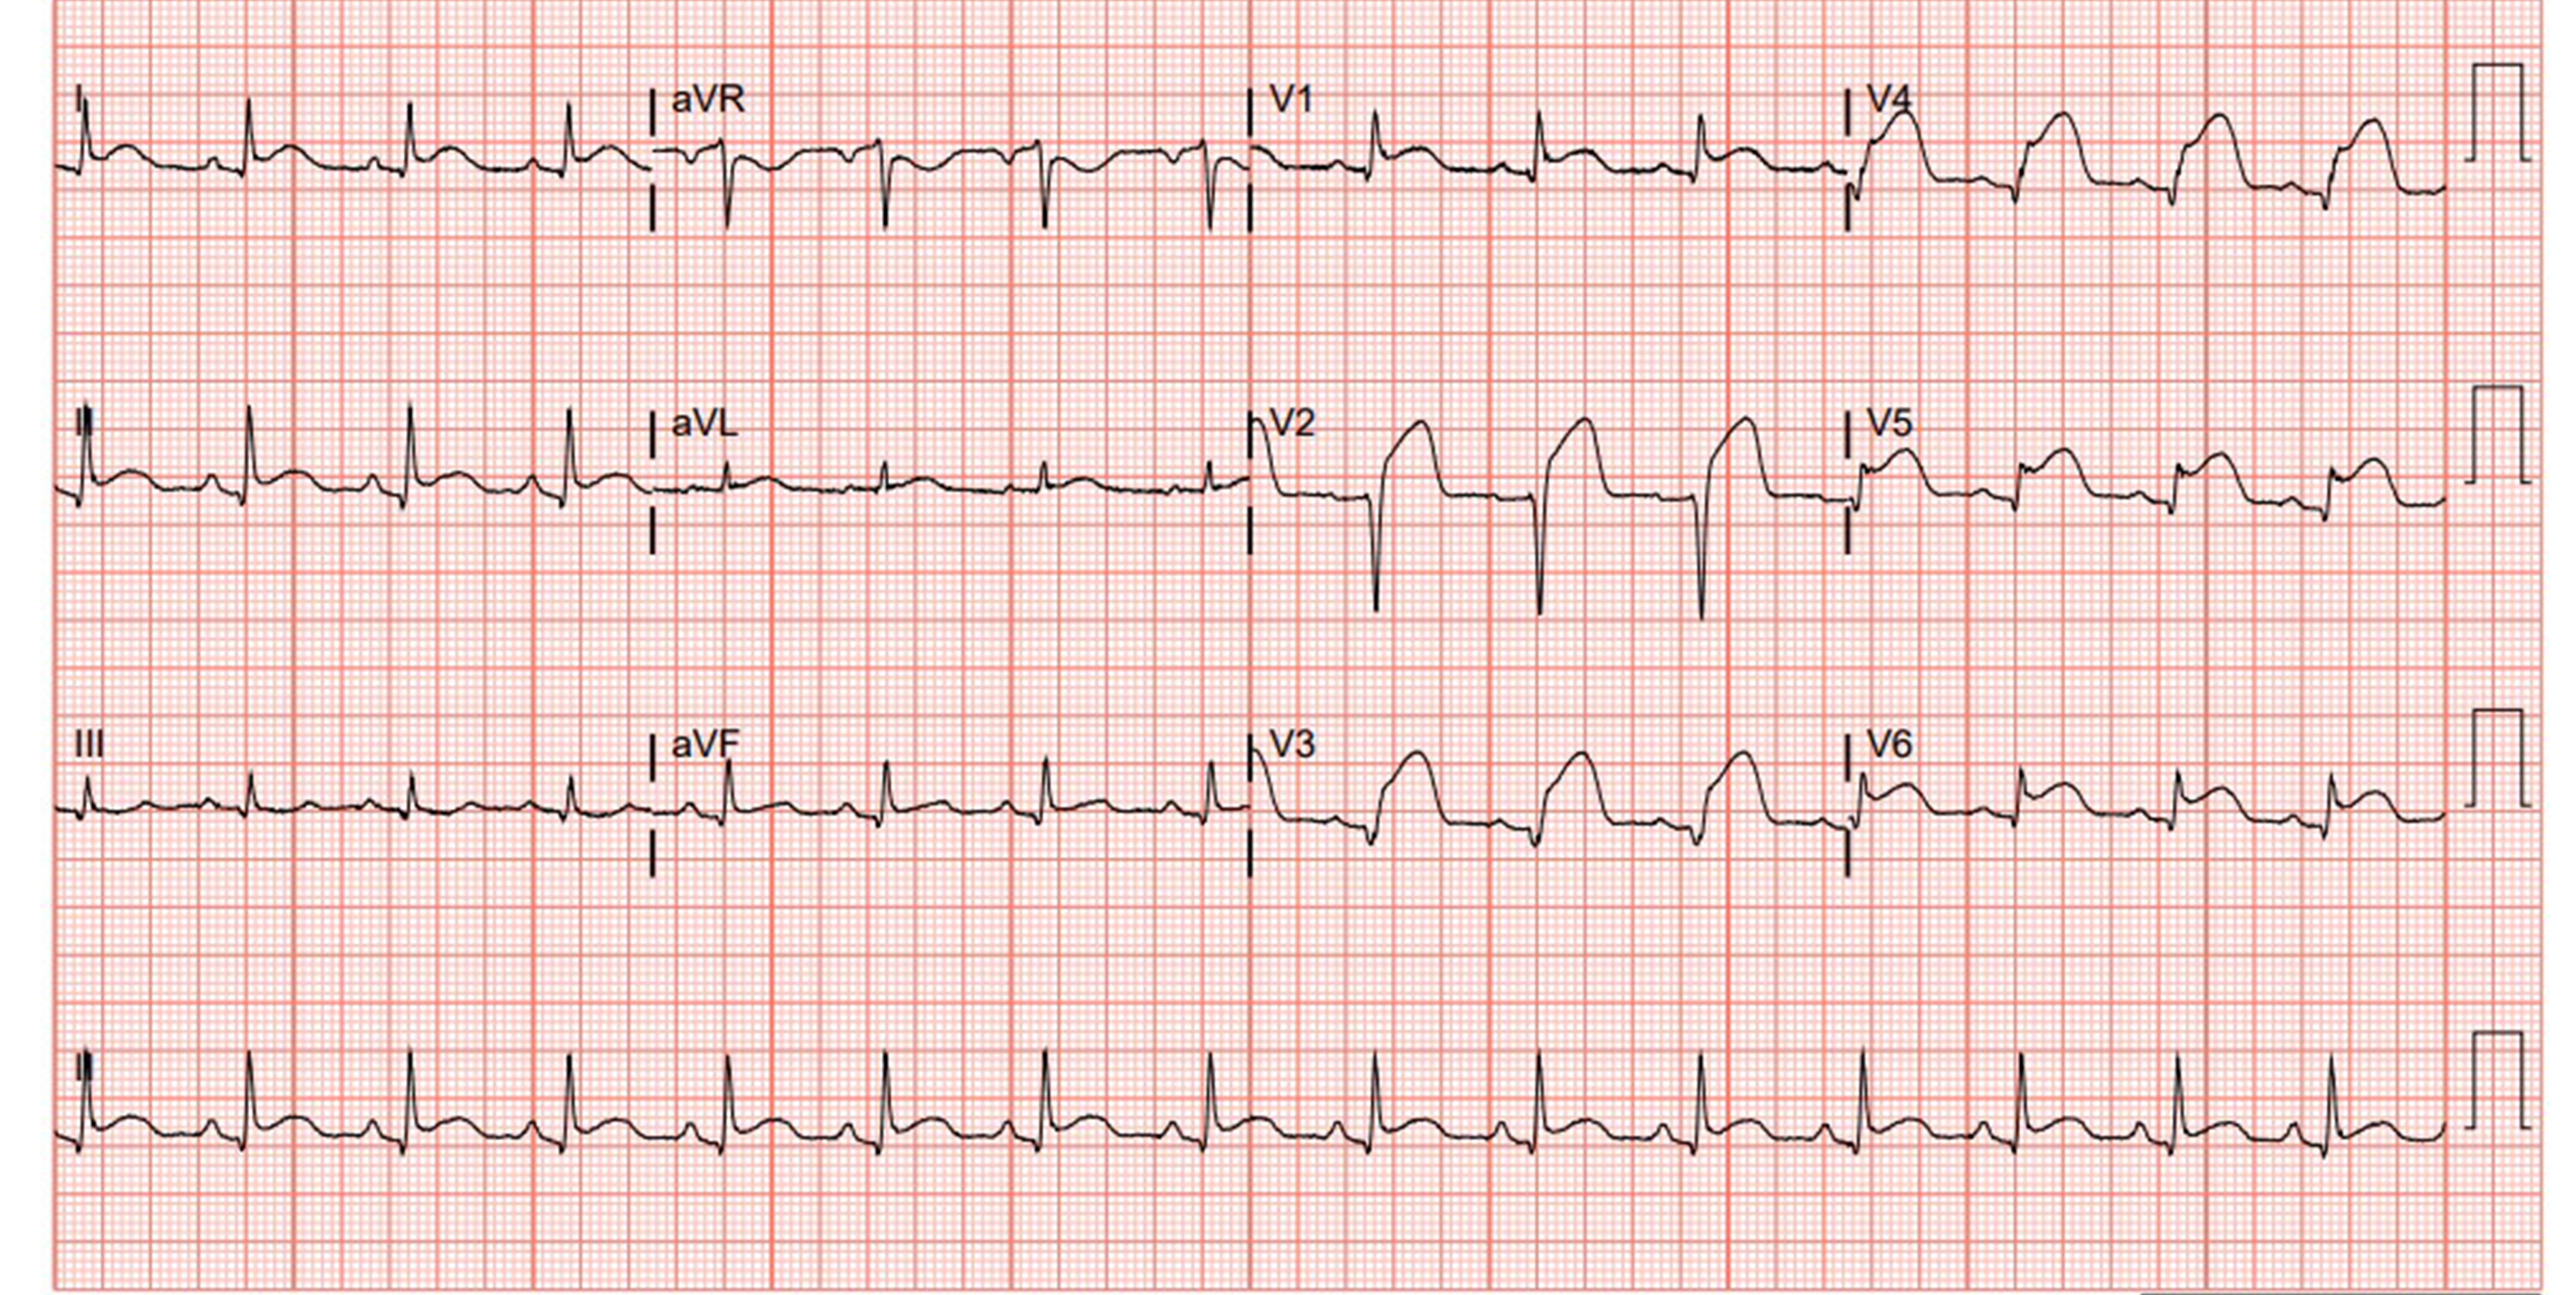 Figure 2 - Repeat EKG